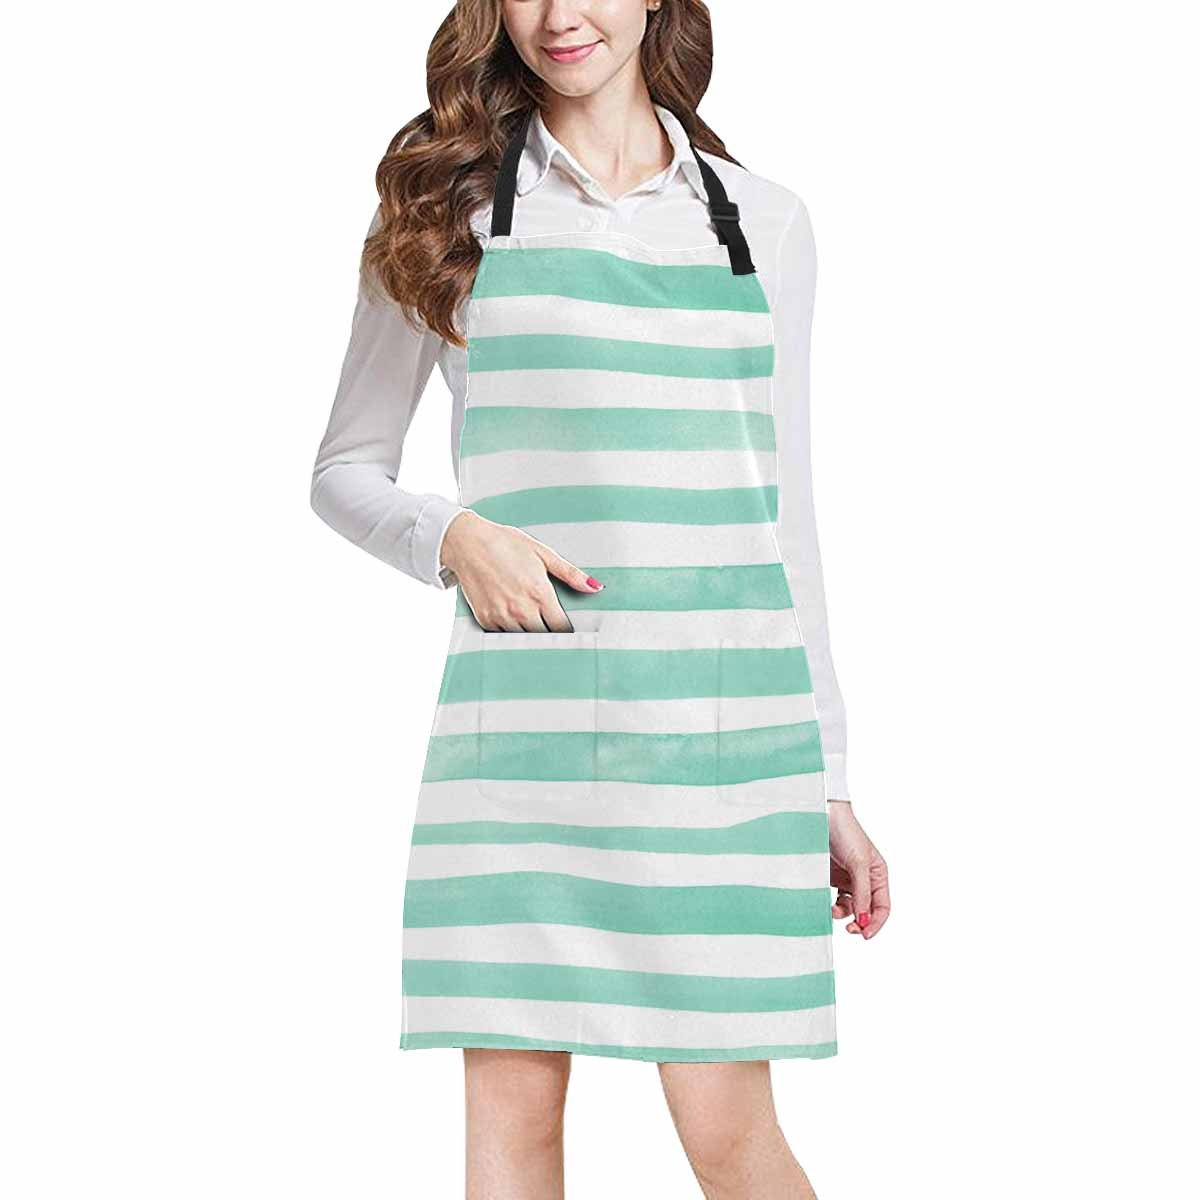 InterestPrint Abstract Light Mint Lines and Stripes Home Kitchen Apron for Women Men with Pockets, Unisex Adjustable Bib Apron for Cooking Baking Gardening, Large Size